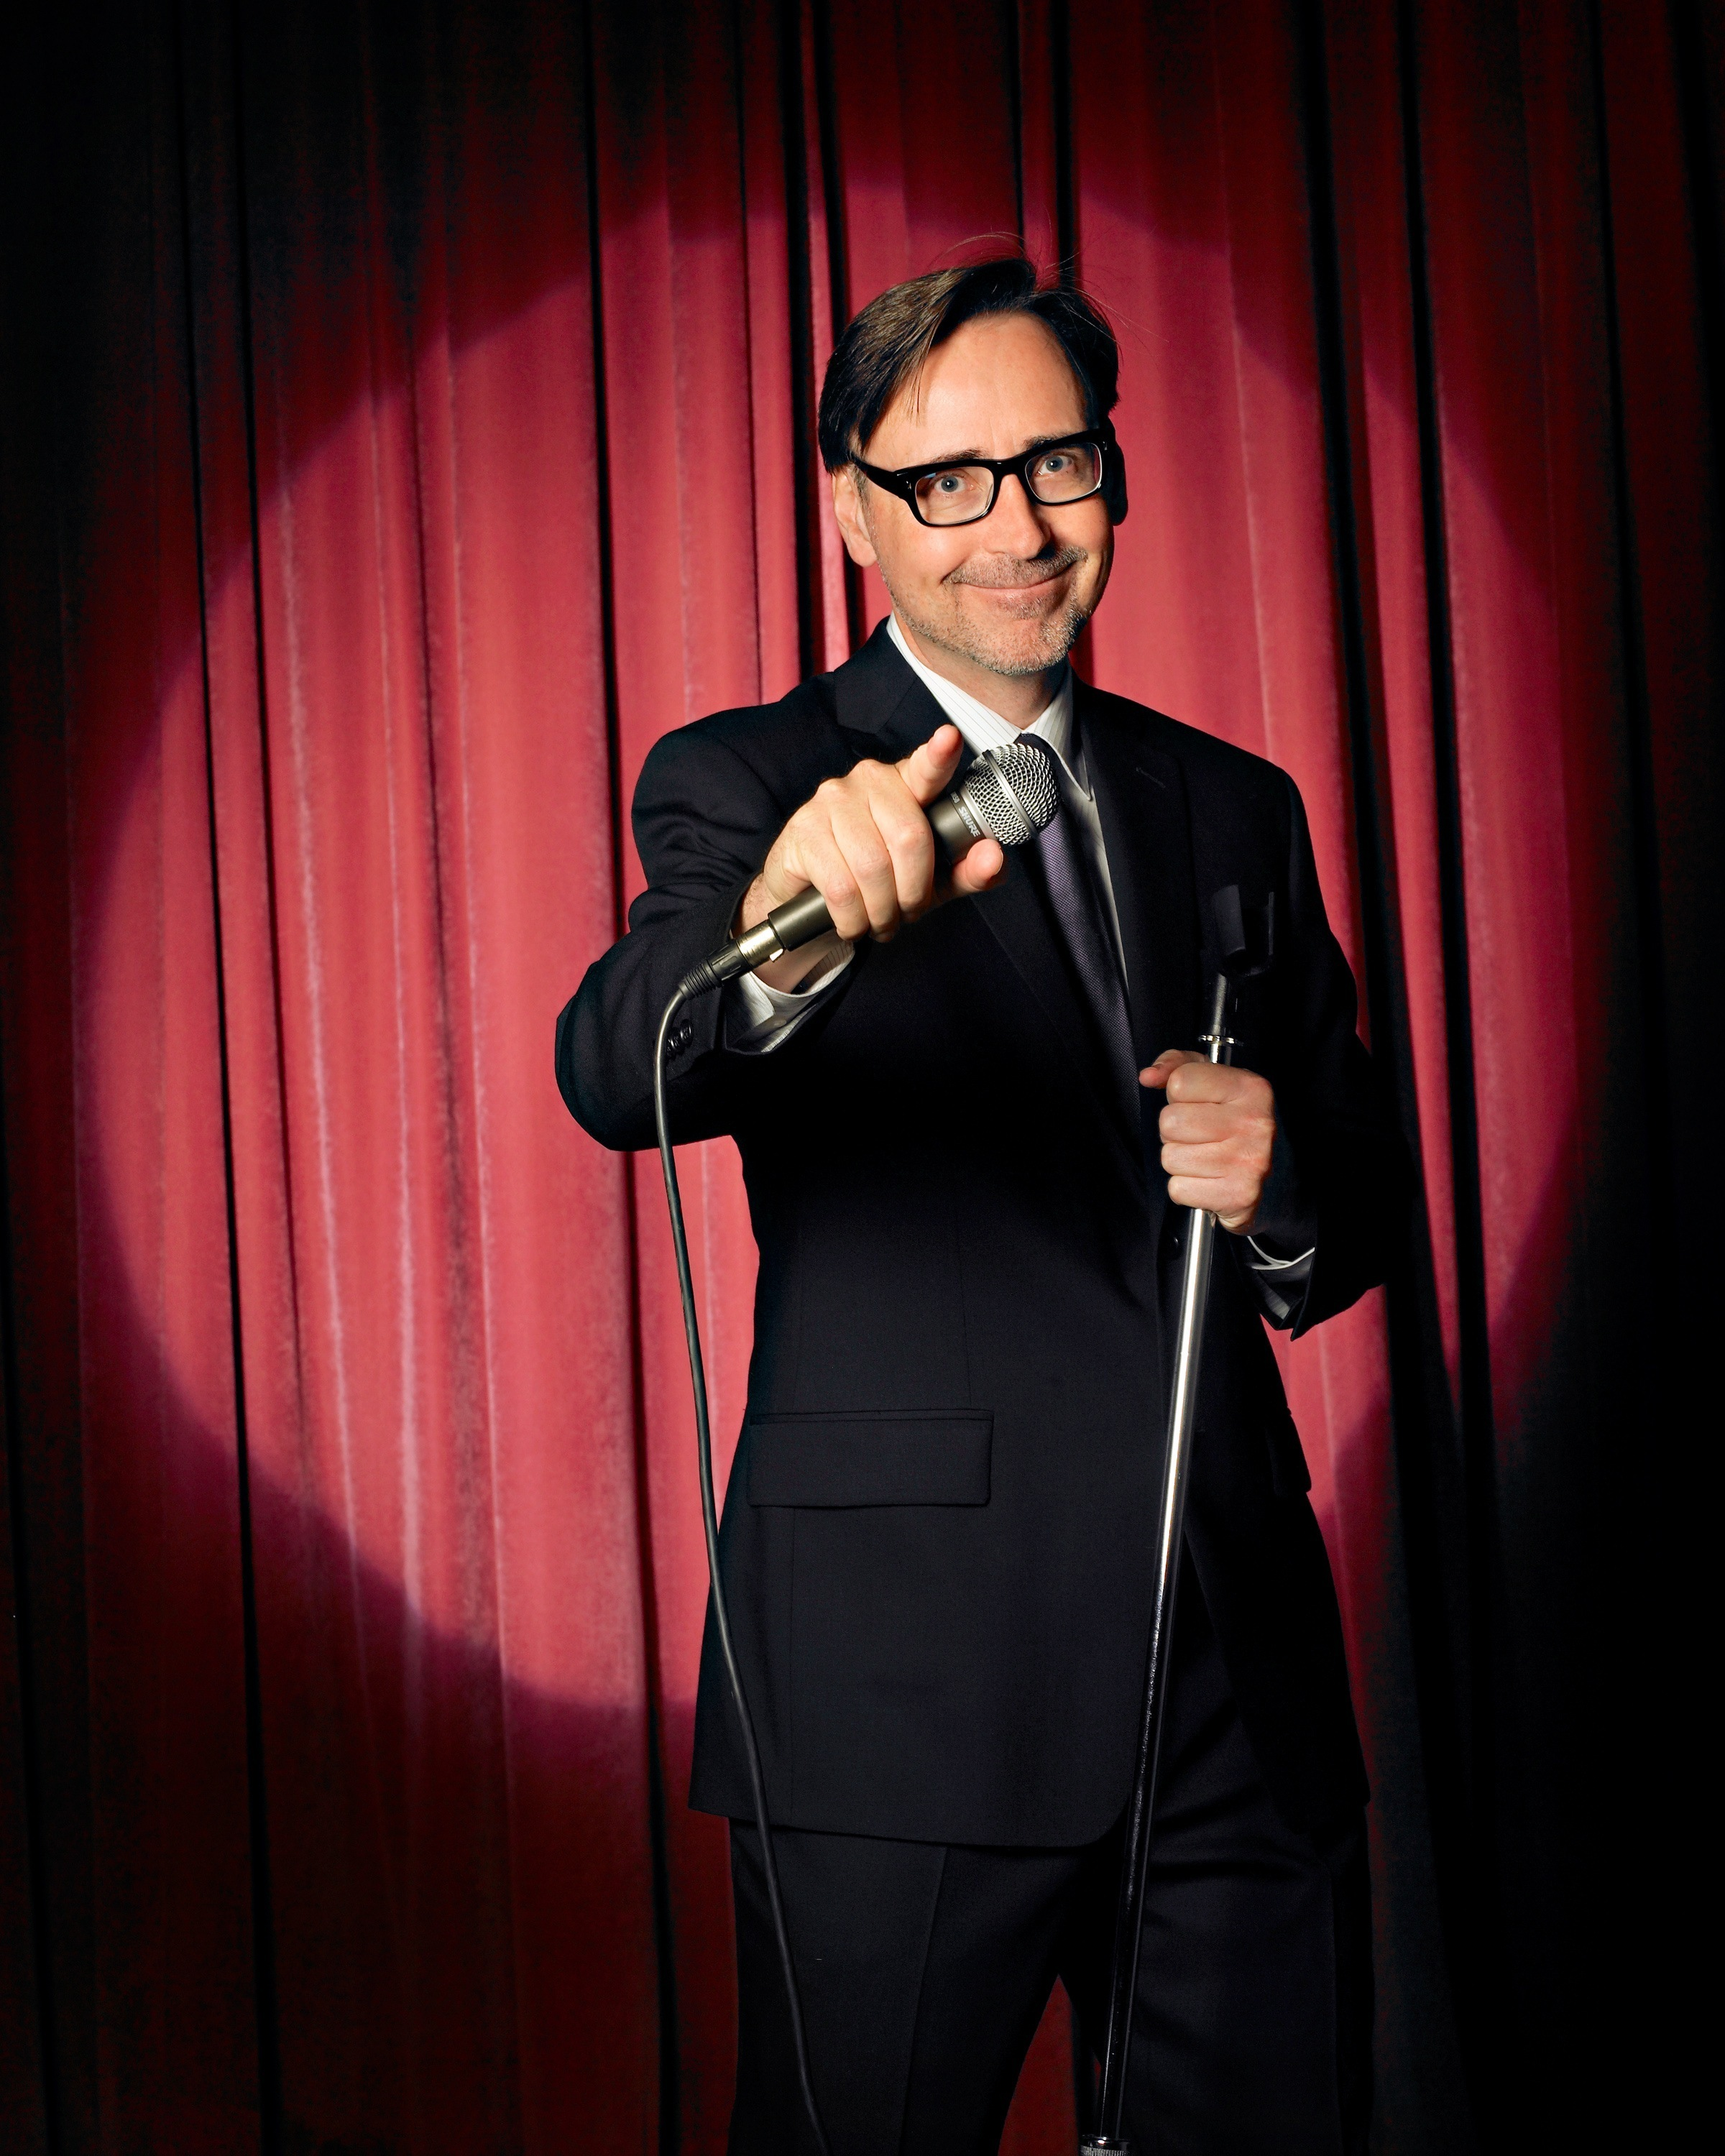 Comedian Brian Stollery @ Crickets Comedy Club March 3-4